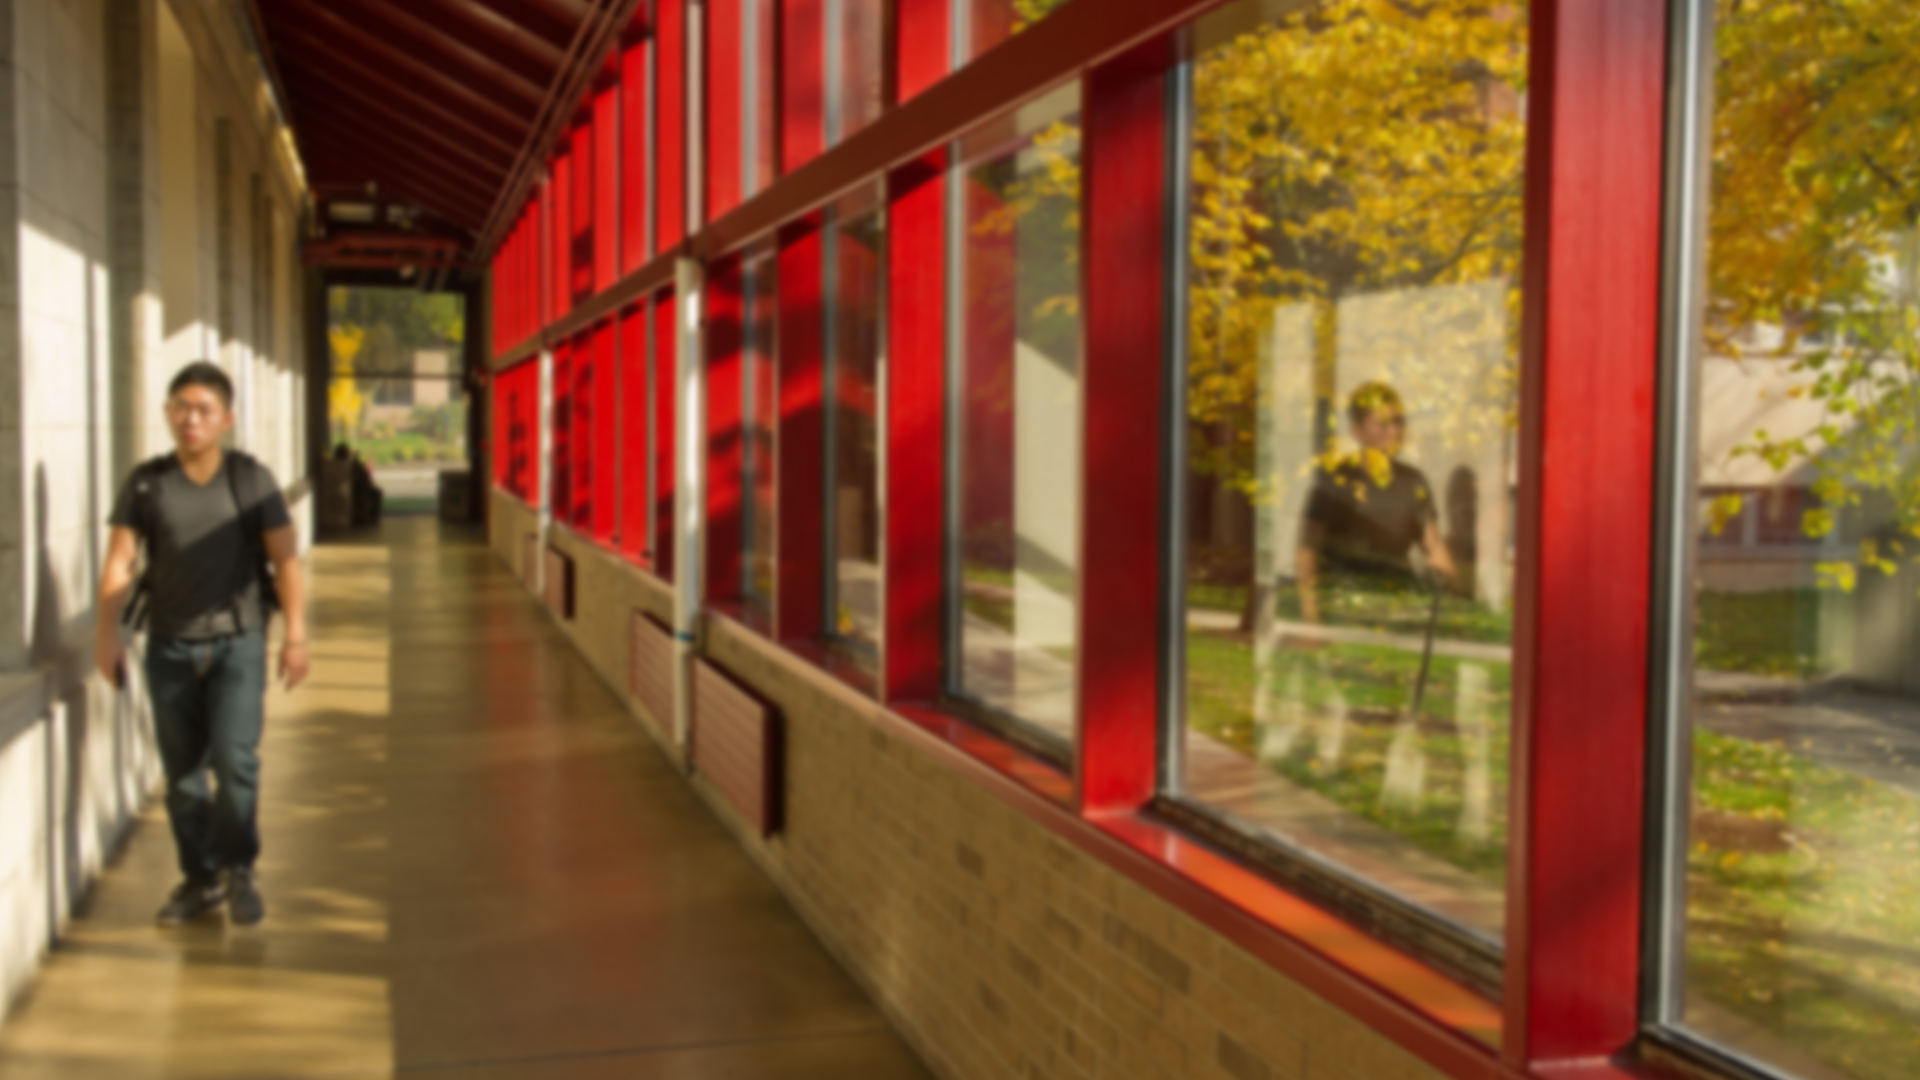 interior red and glass hallway in huntington hall